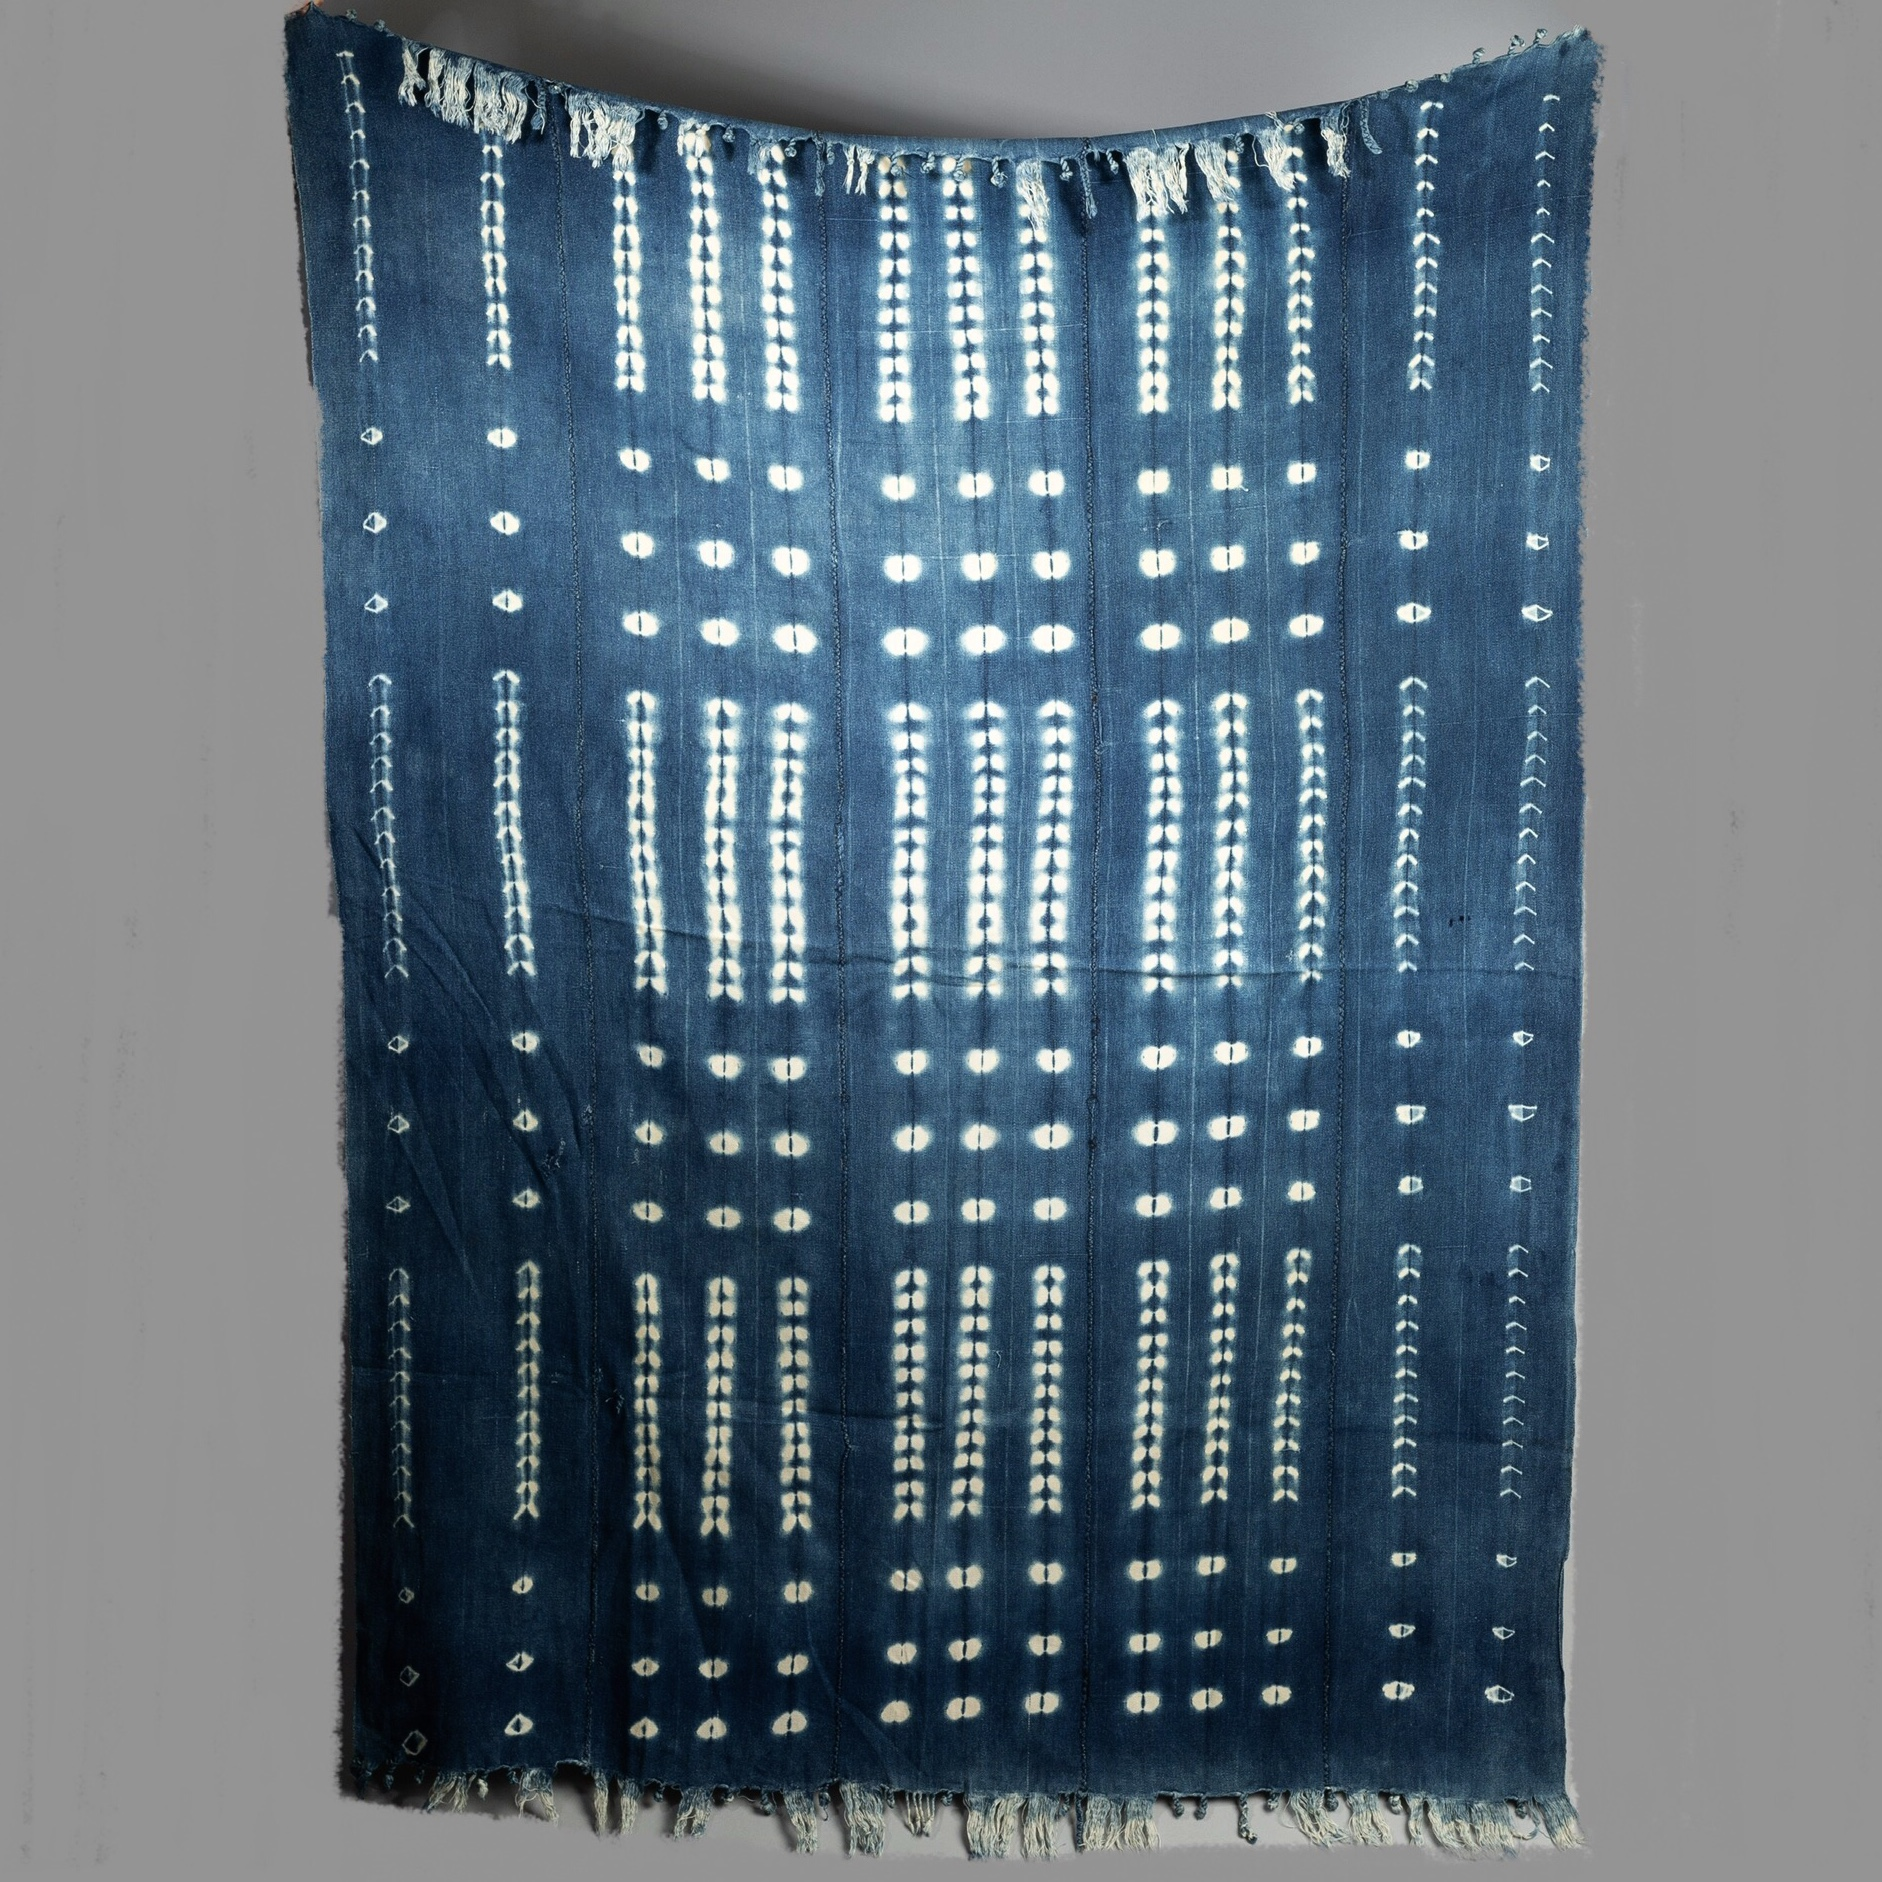 AN ENERGETIC MOSSI CLOTH FROM BURKINA FASO ( No 3249 )